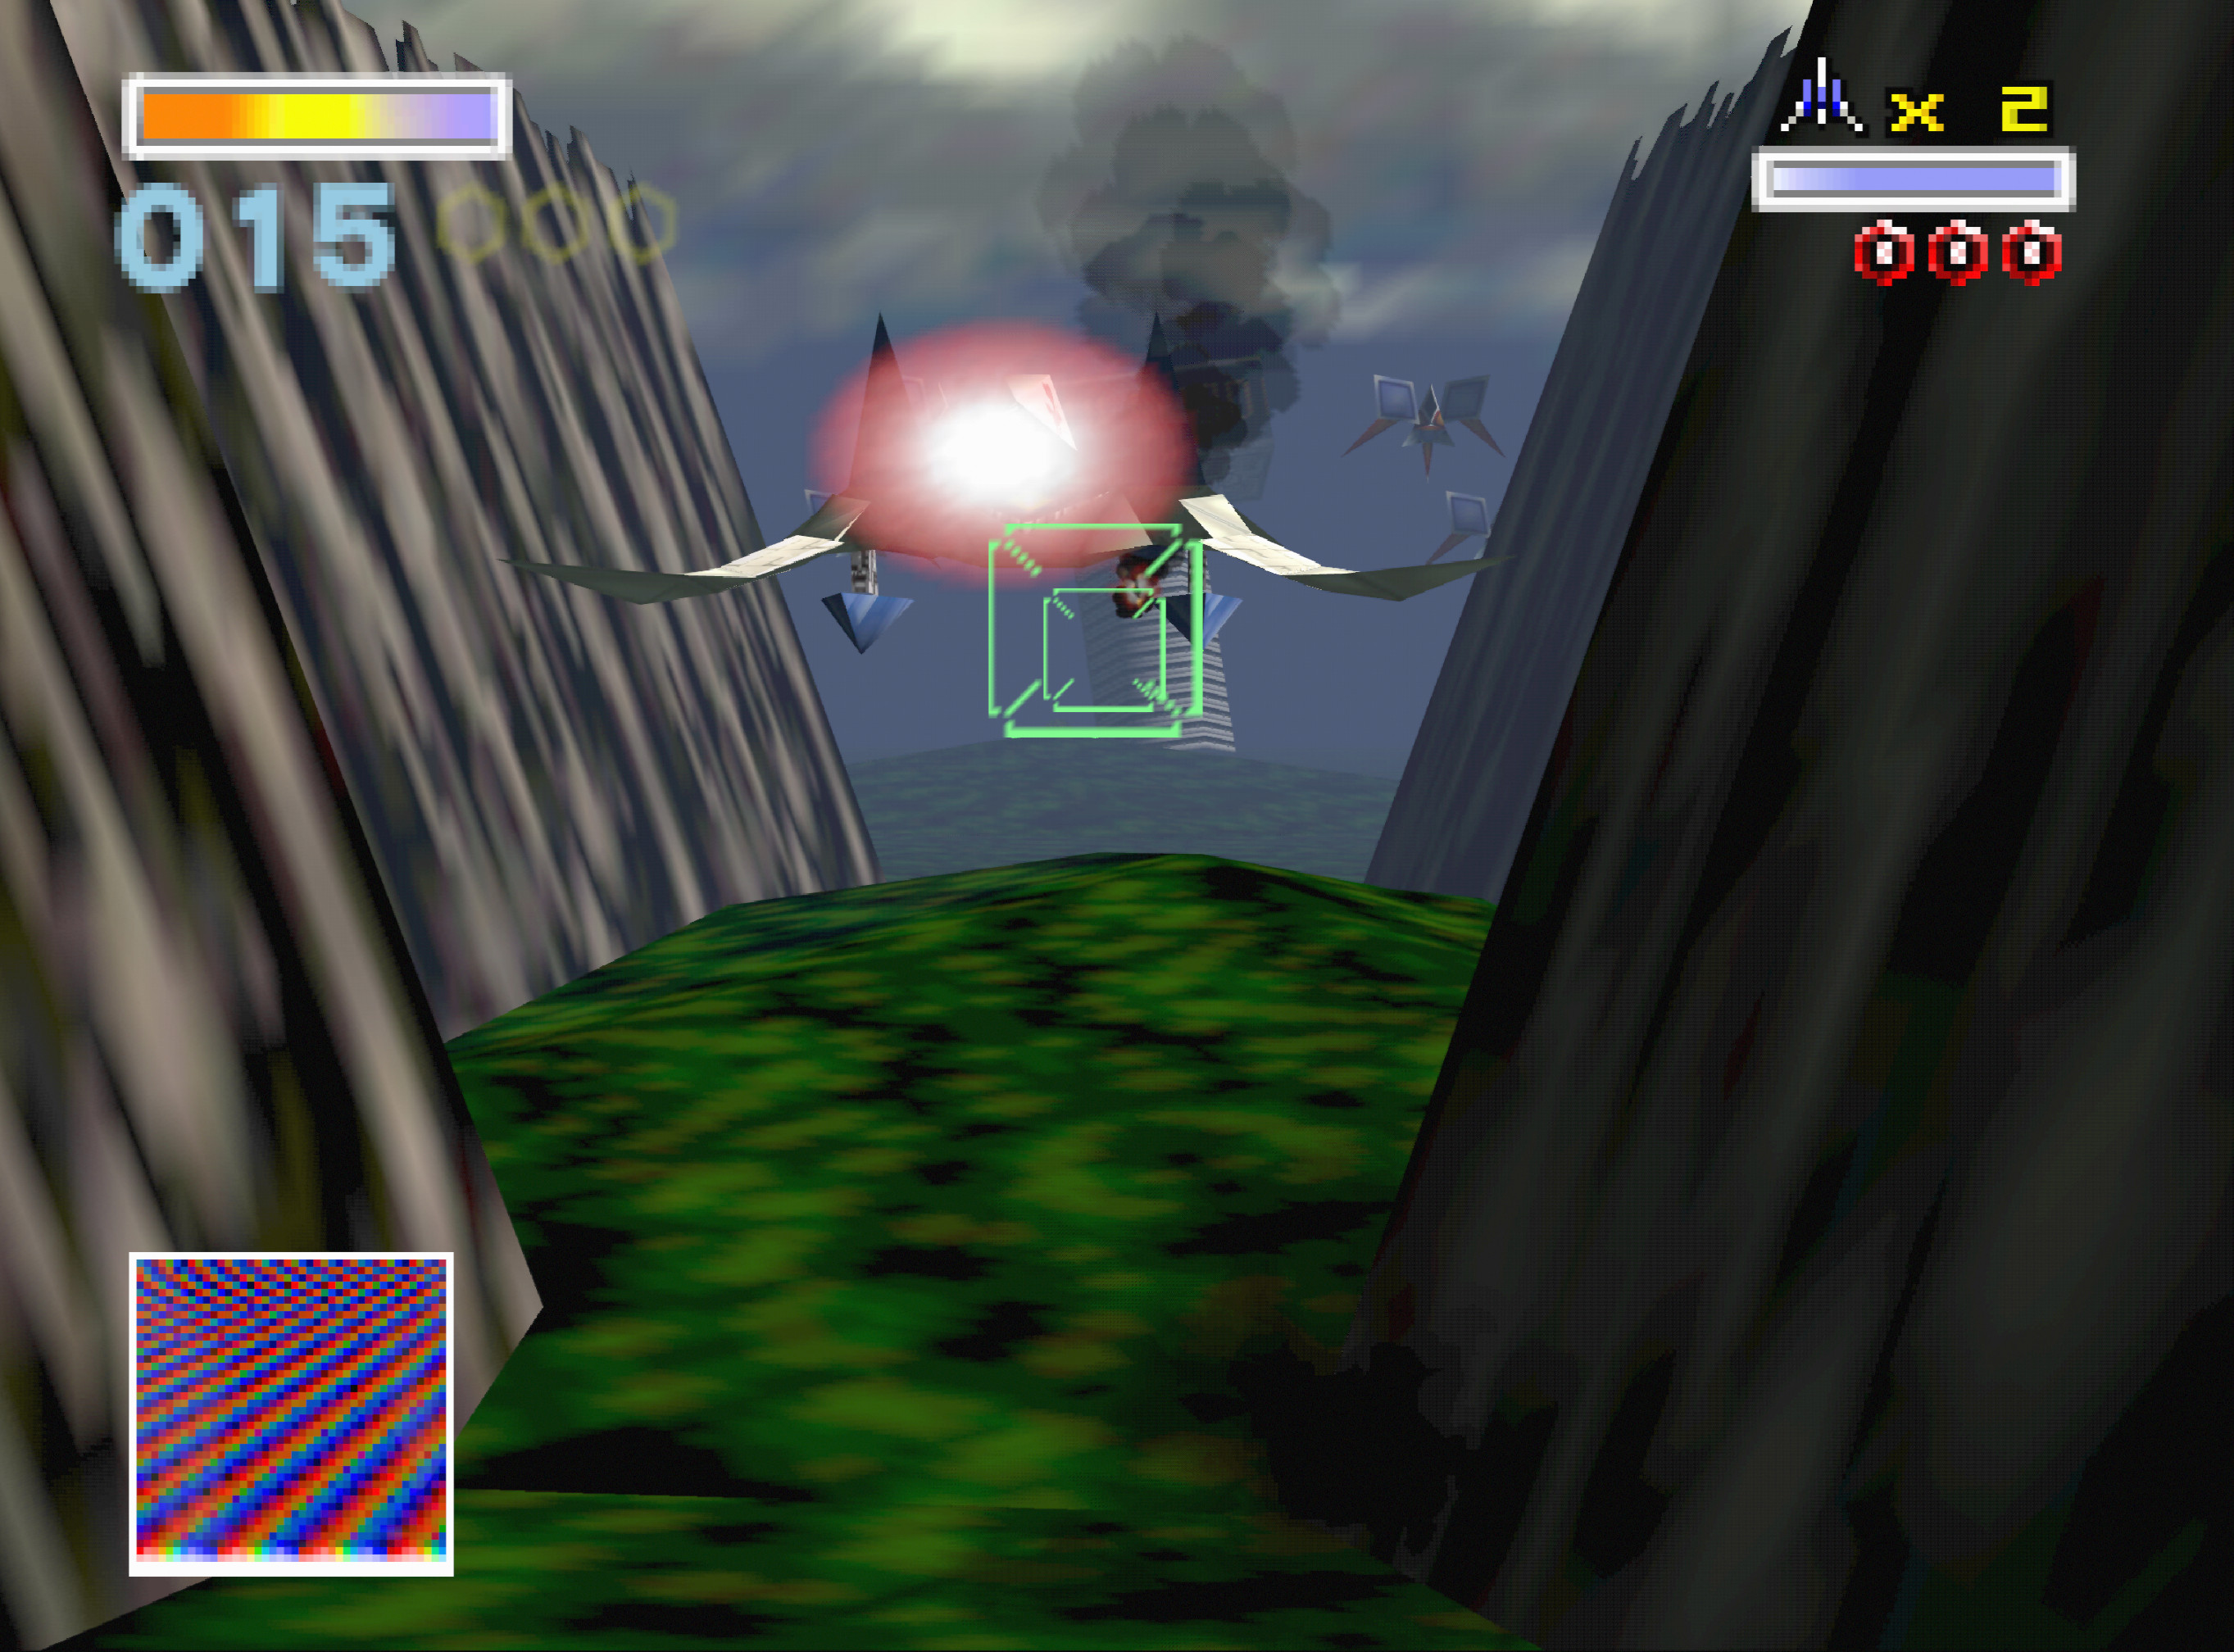 Star Fox 64 running on ParaLLEl RDP with 8x internal upscale